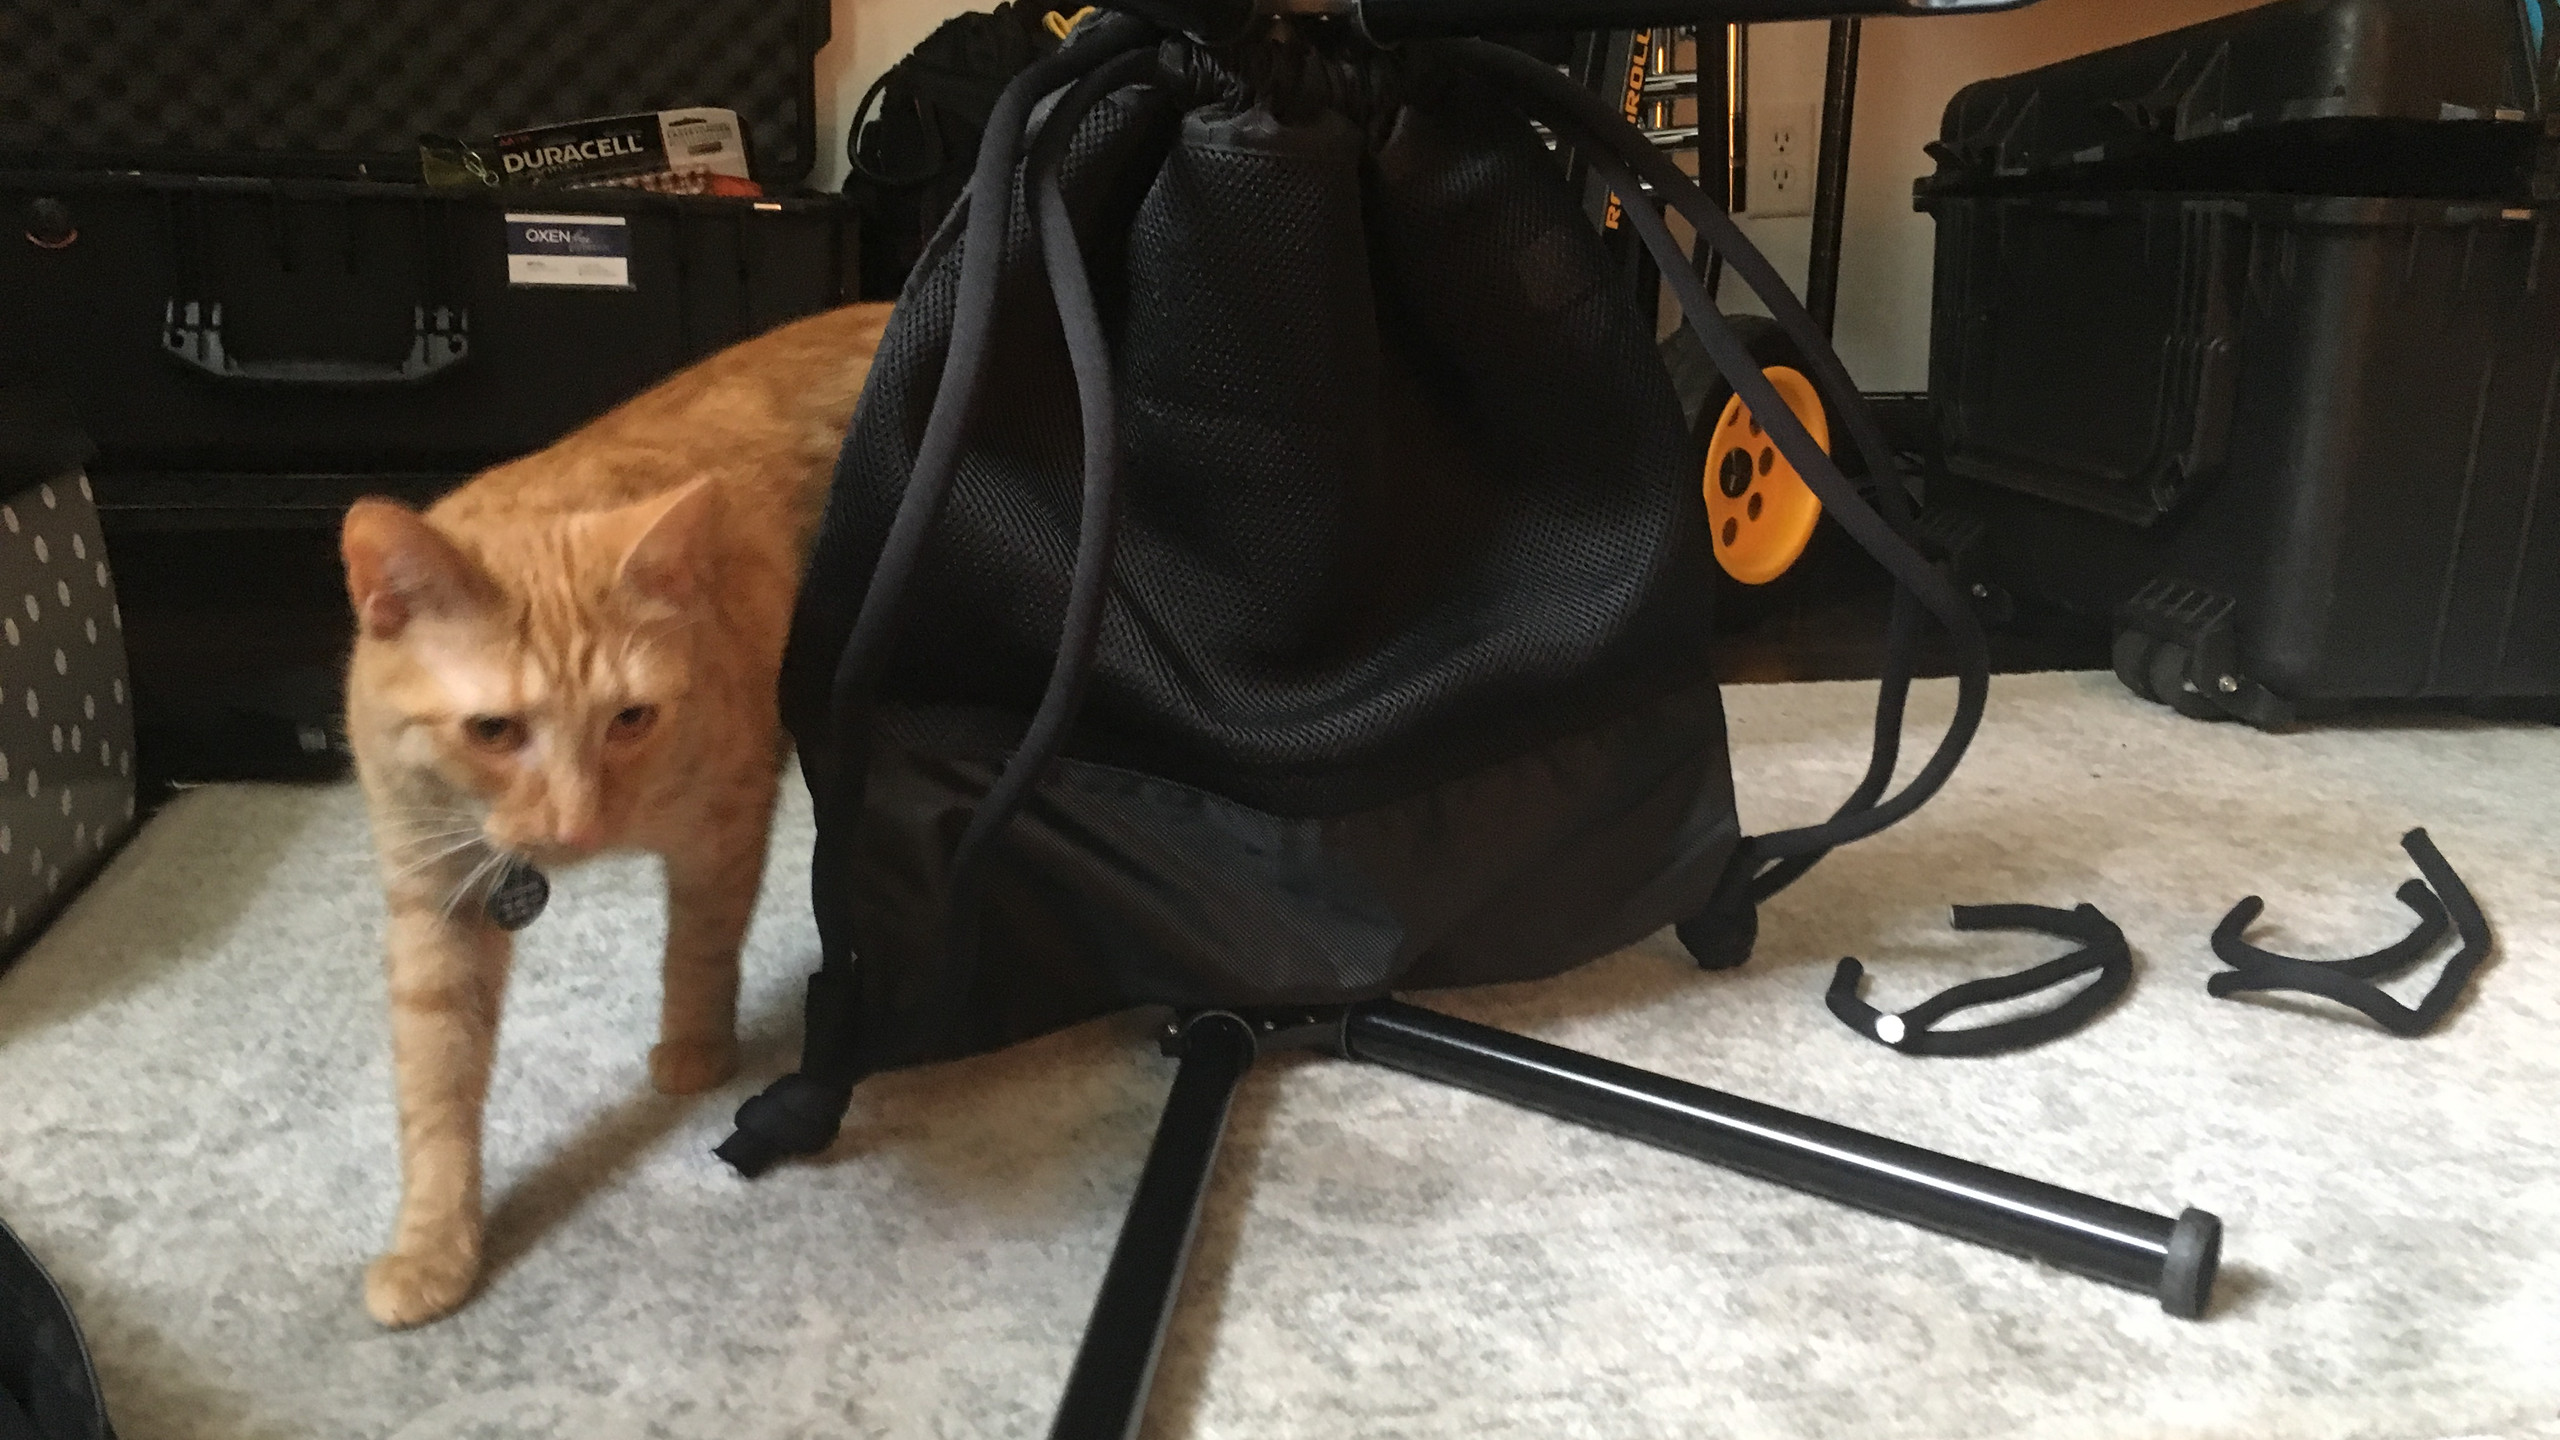 Final stand bag (cat not included)